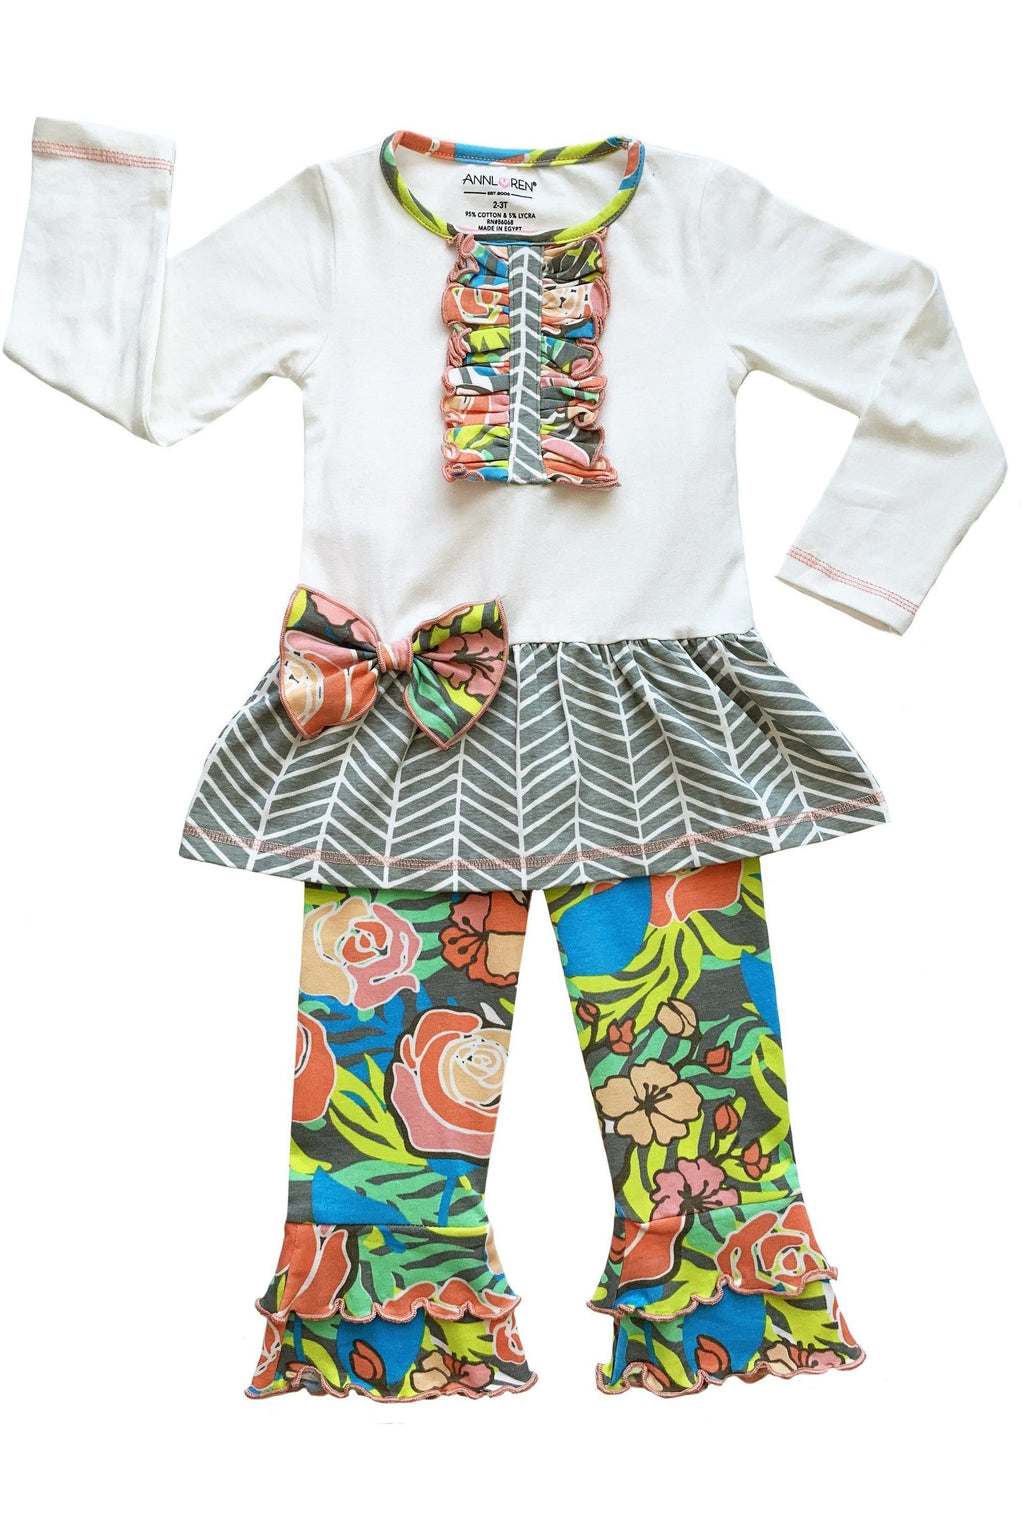 AnnLoren Girls Herringbone Floral Tuxedo Bow Tunic & Pants Clothing Outfit Set sz 12M-9/10 - Himelhoch's